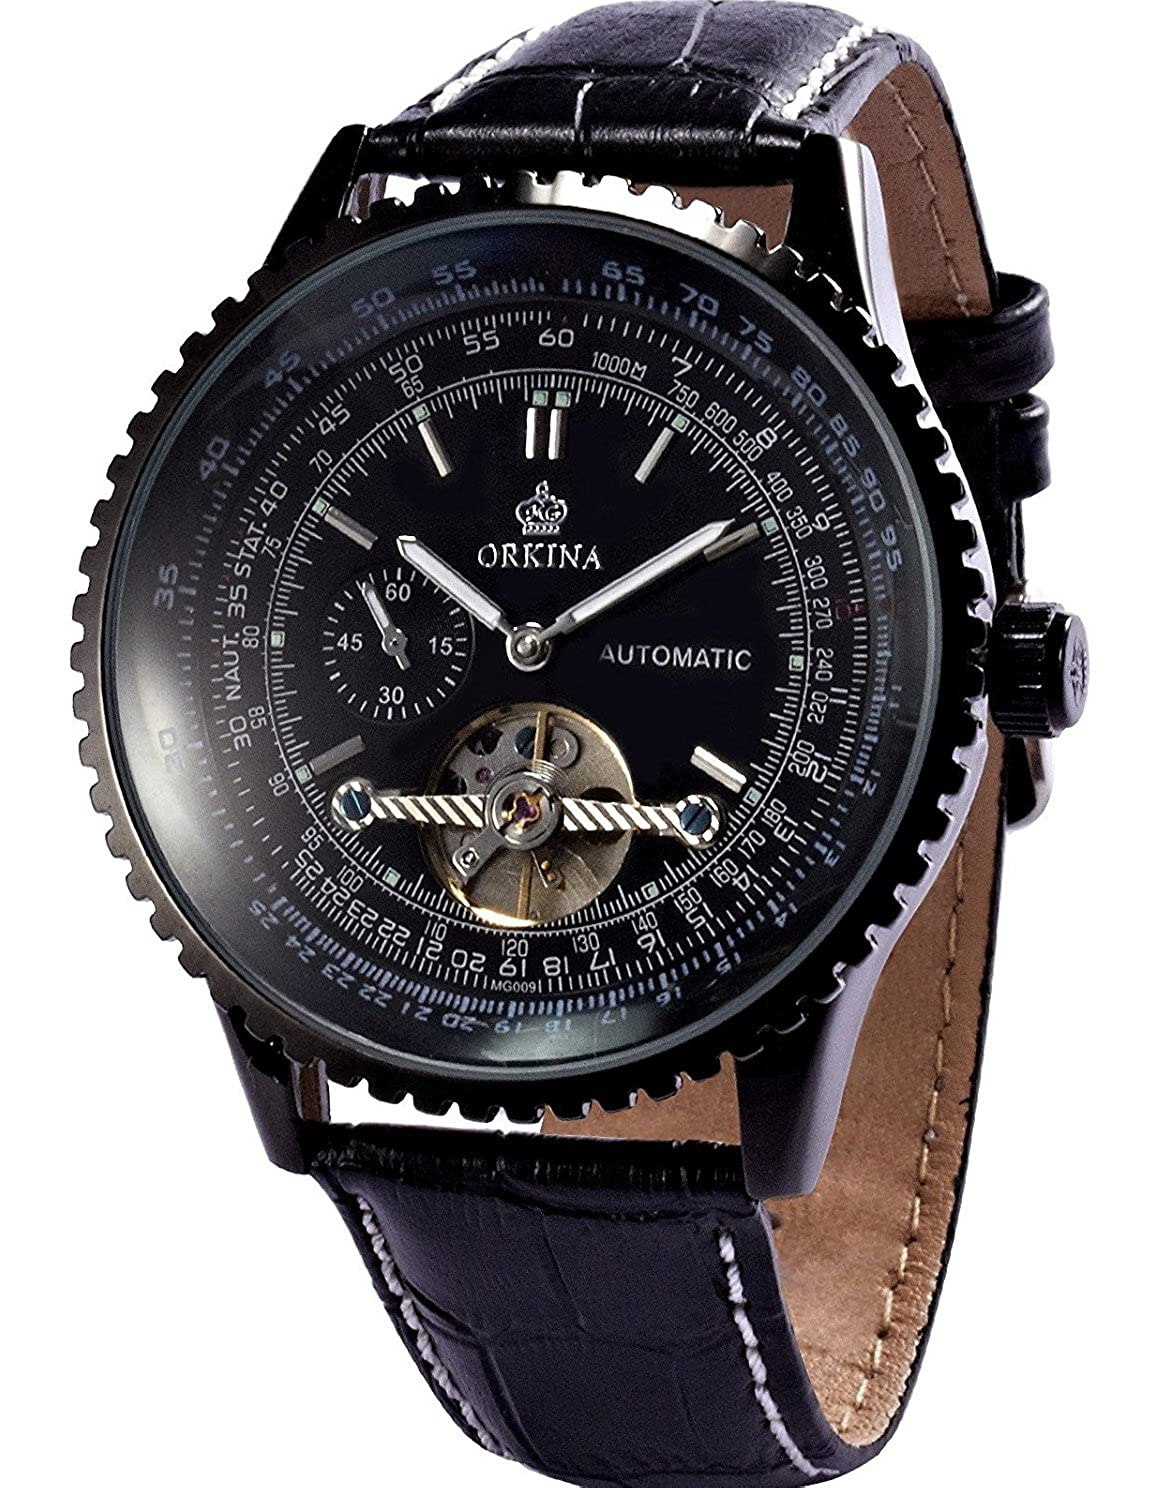 0d4362fda Amazon.com: Carrie Hughes Men's Fashion Tourbillon Stainless Steel Leather Automatic  Mechanical Watch (CHG009): Carrie Hughes: Watches